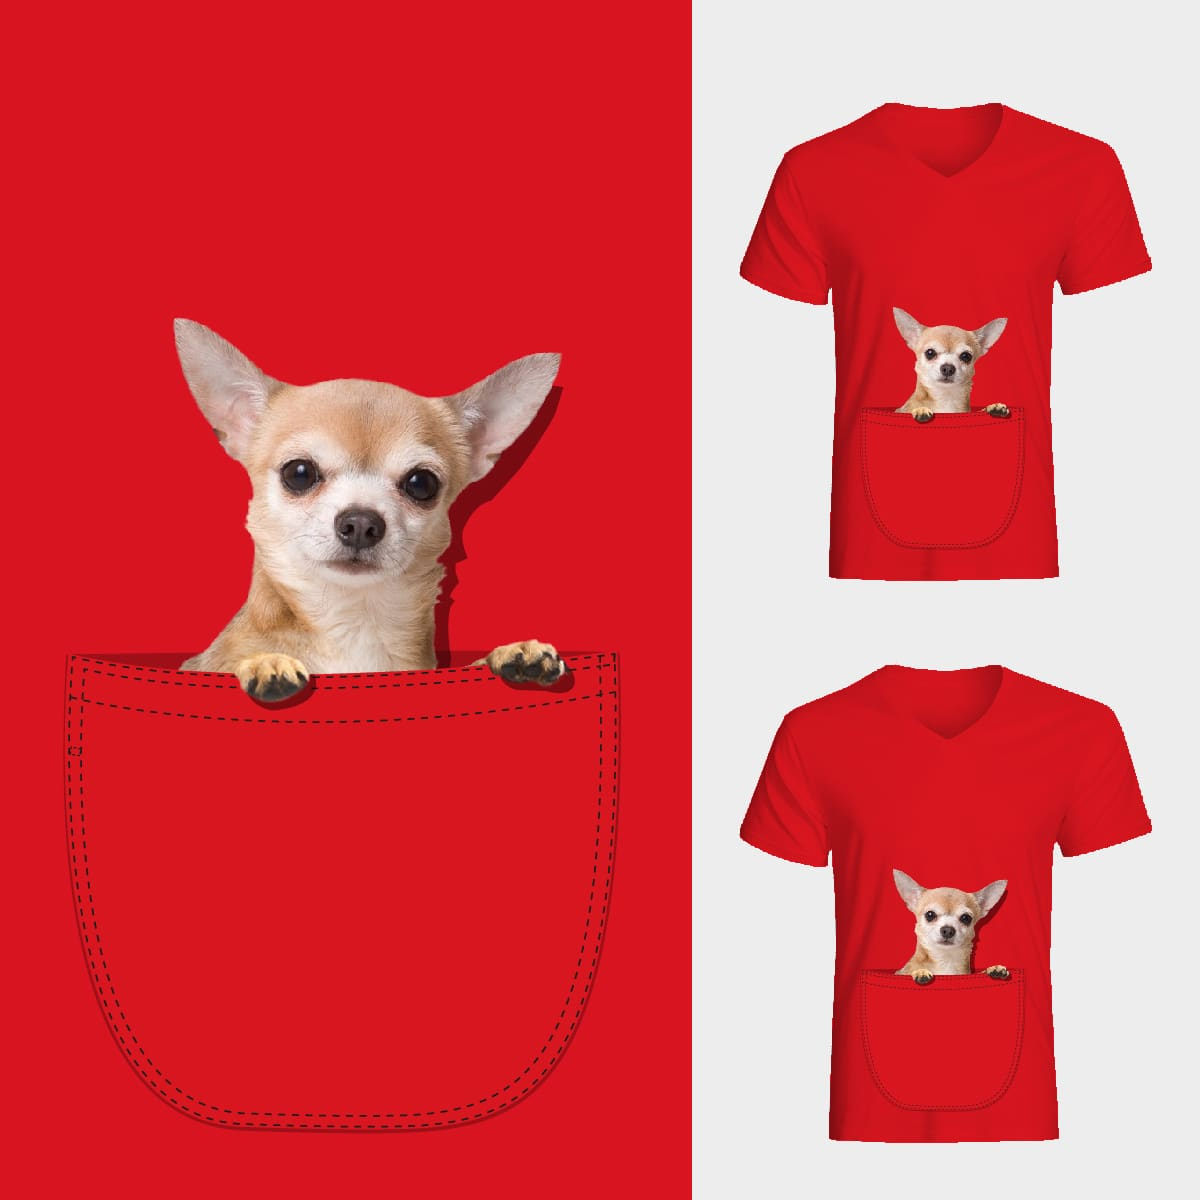 Chihuahua in big pocket by chachacillas on Threadless